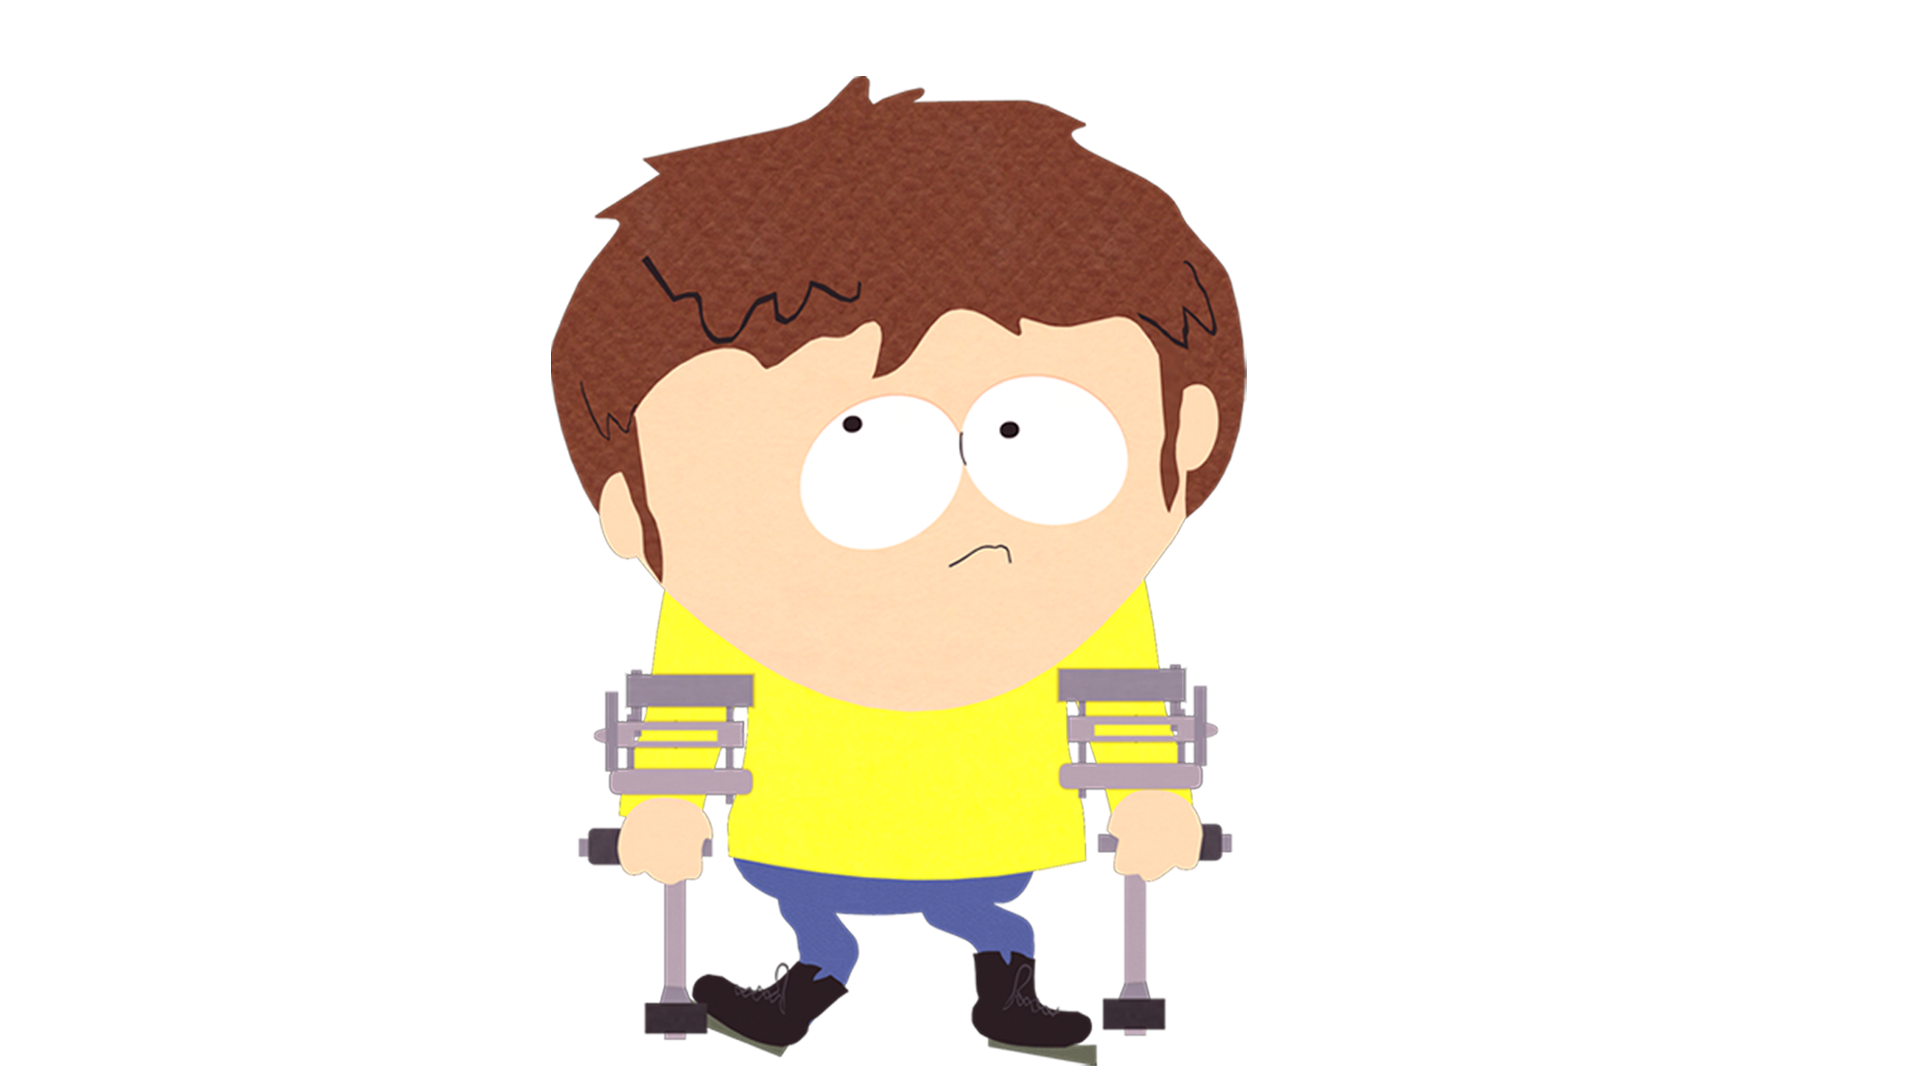 Cartman transparent expression. Jimmy valmer official south